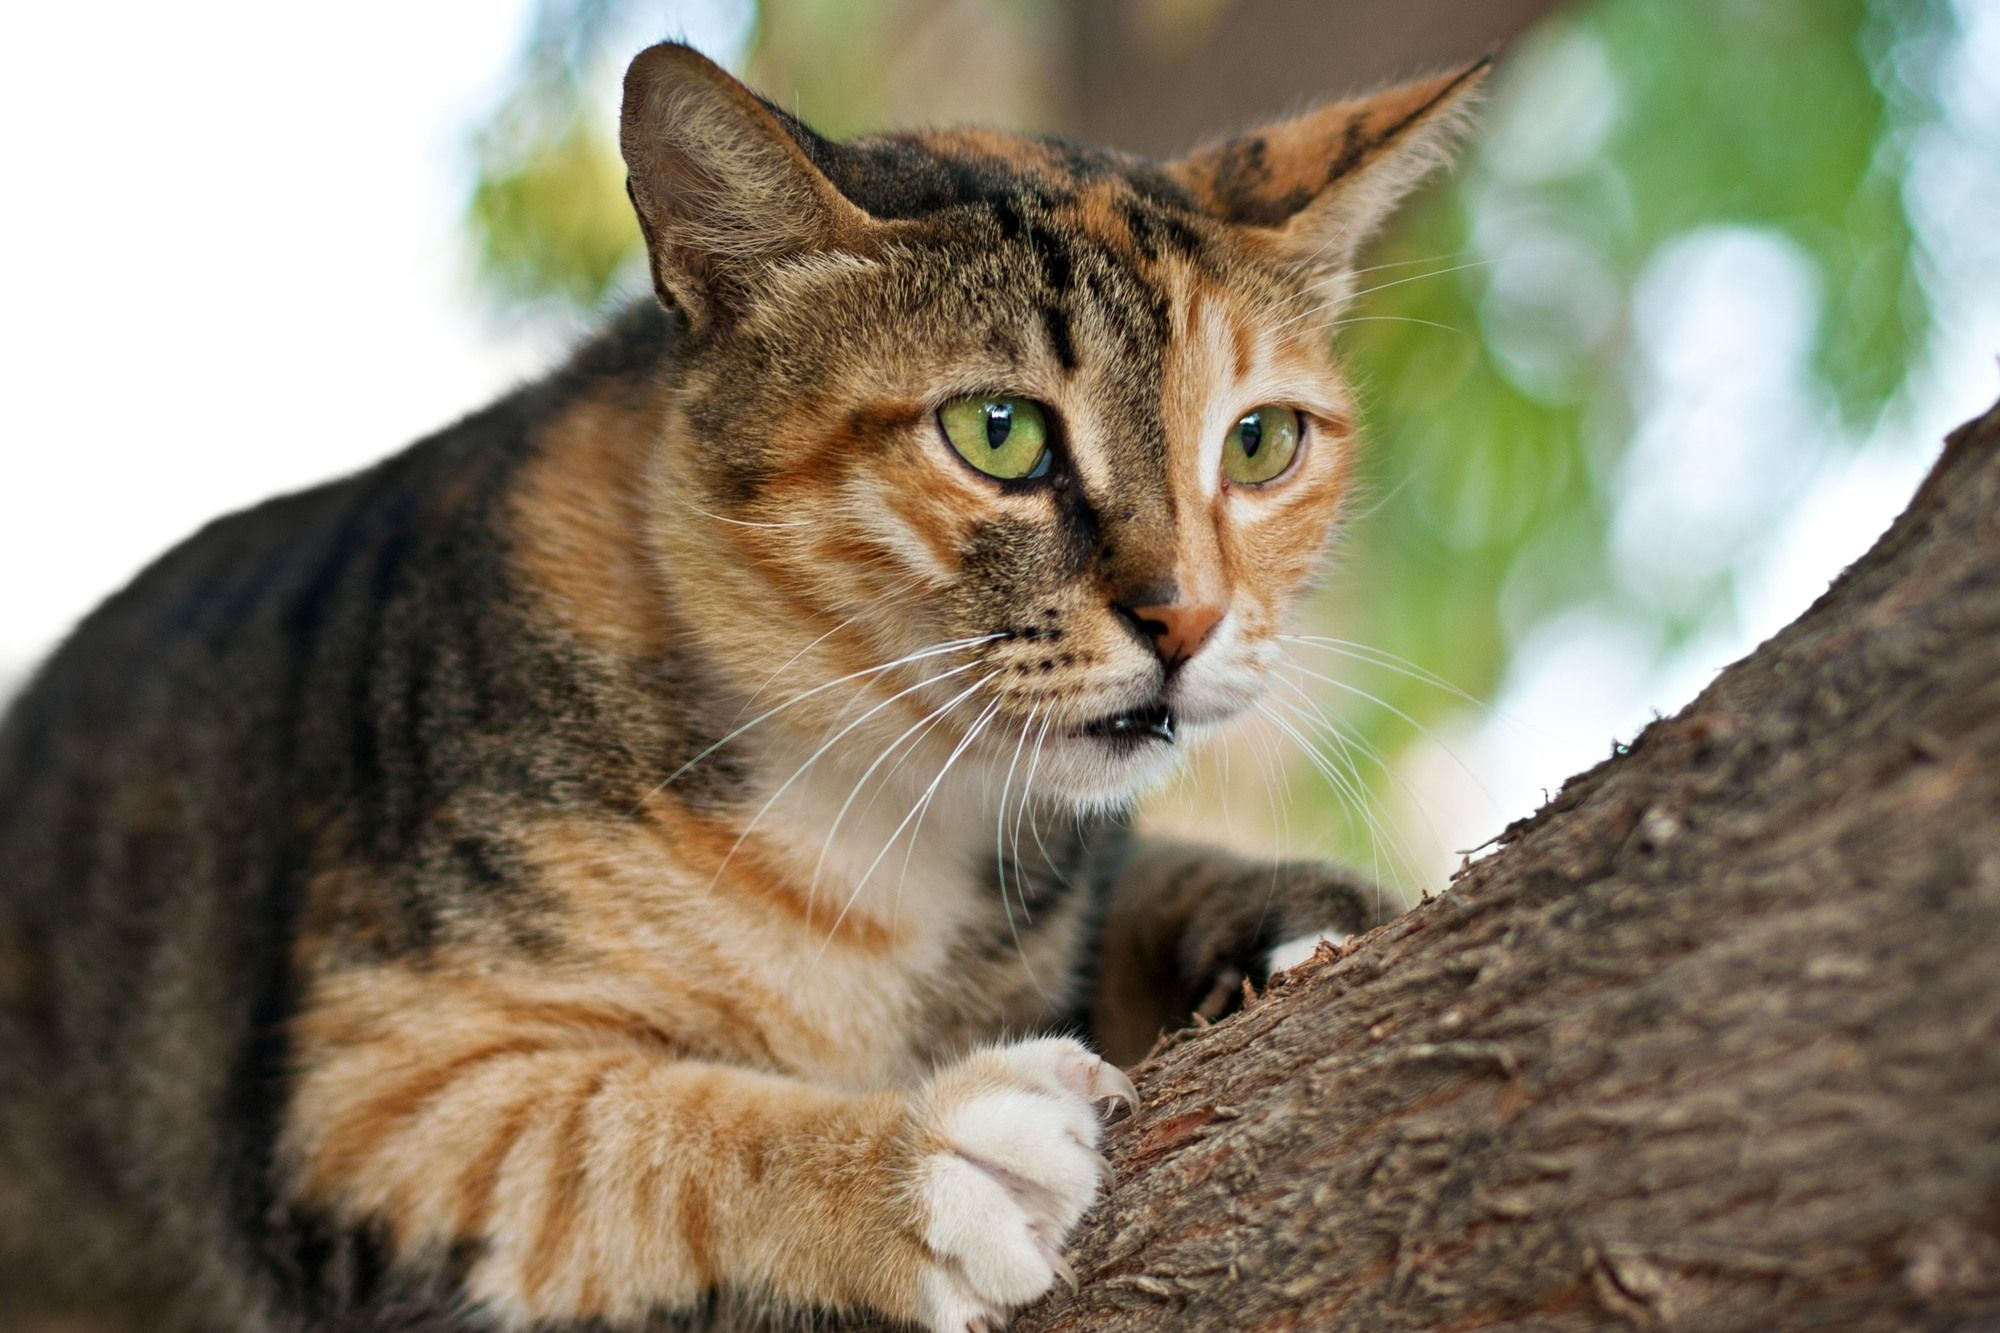 Cats Use Their Claws To Climb Trees But What If Kitties Do